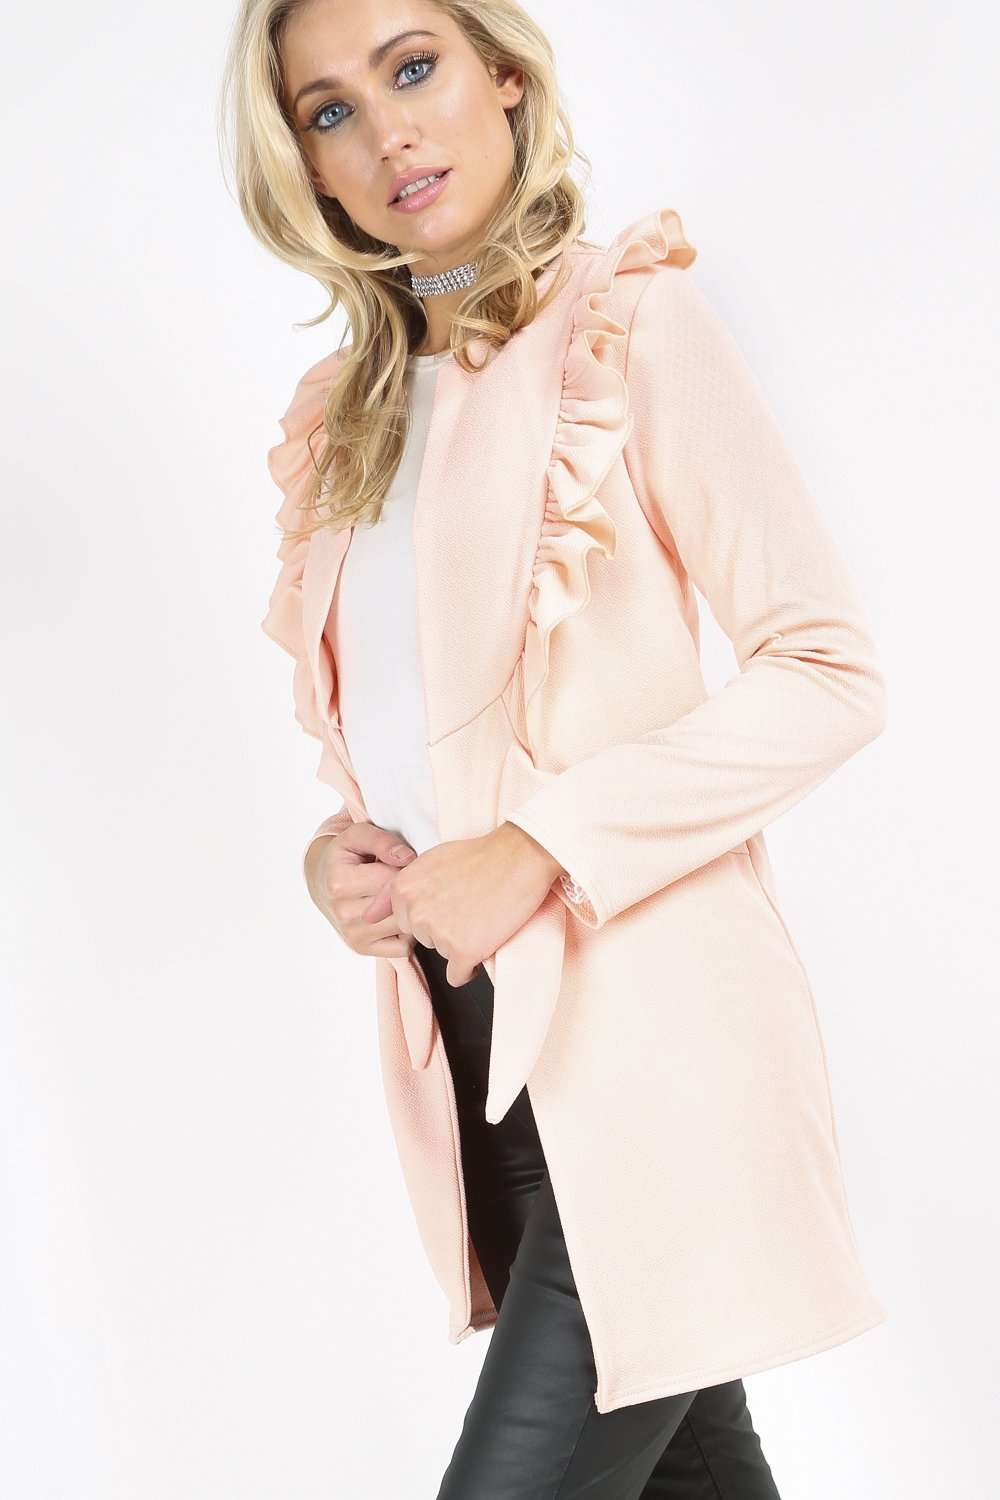 Kassandra Long Sleeve Ruffle Trim Jacket - bejealous-com